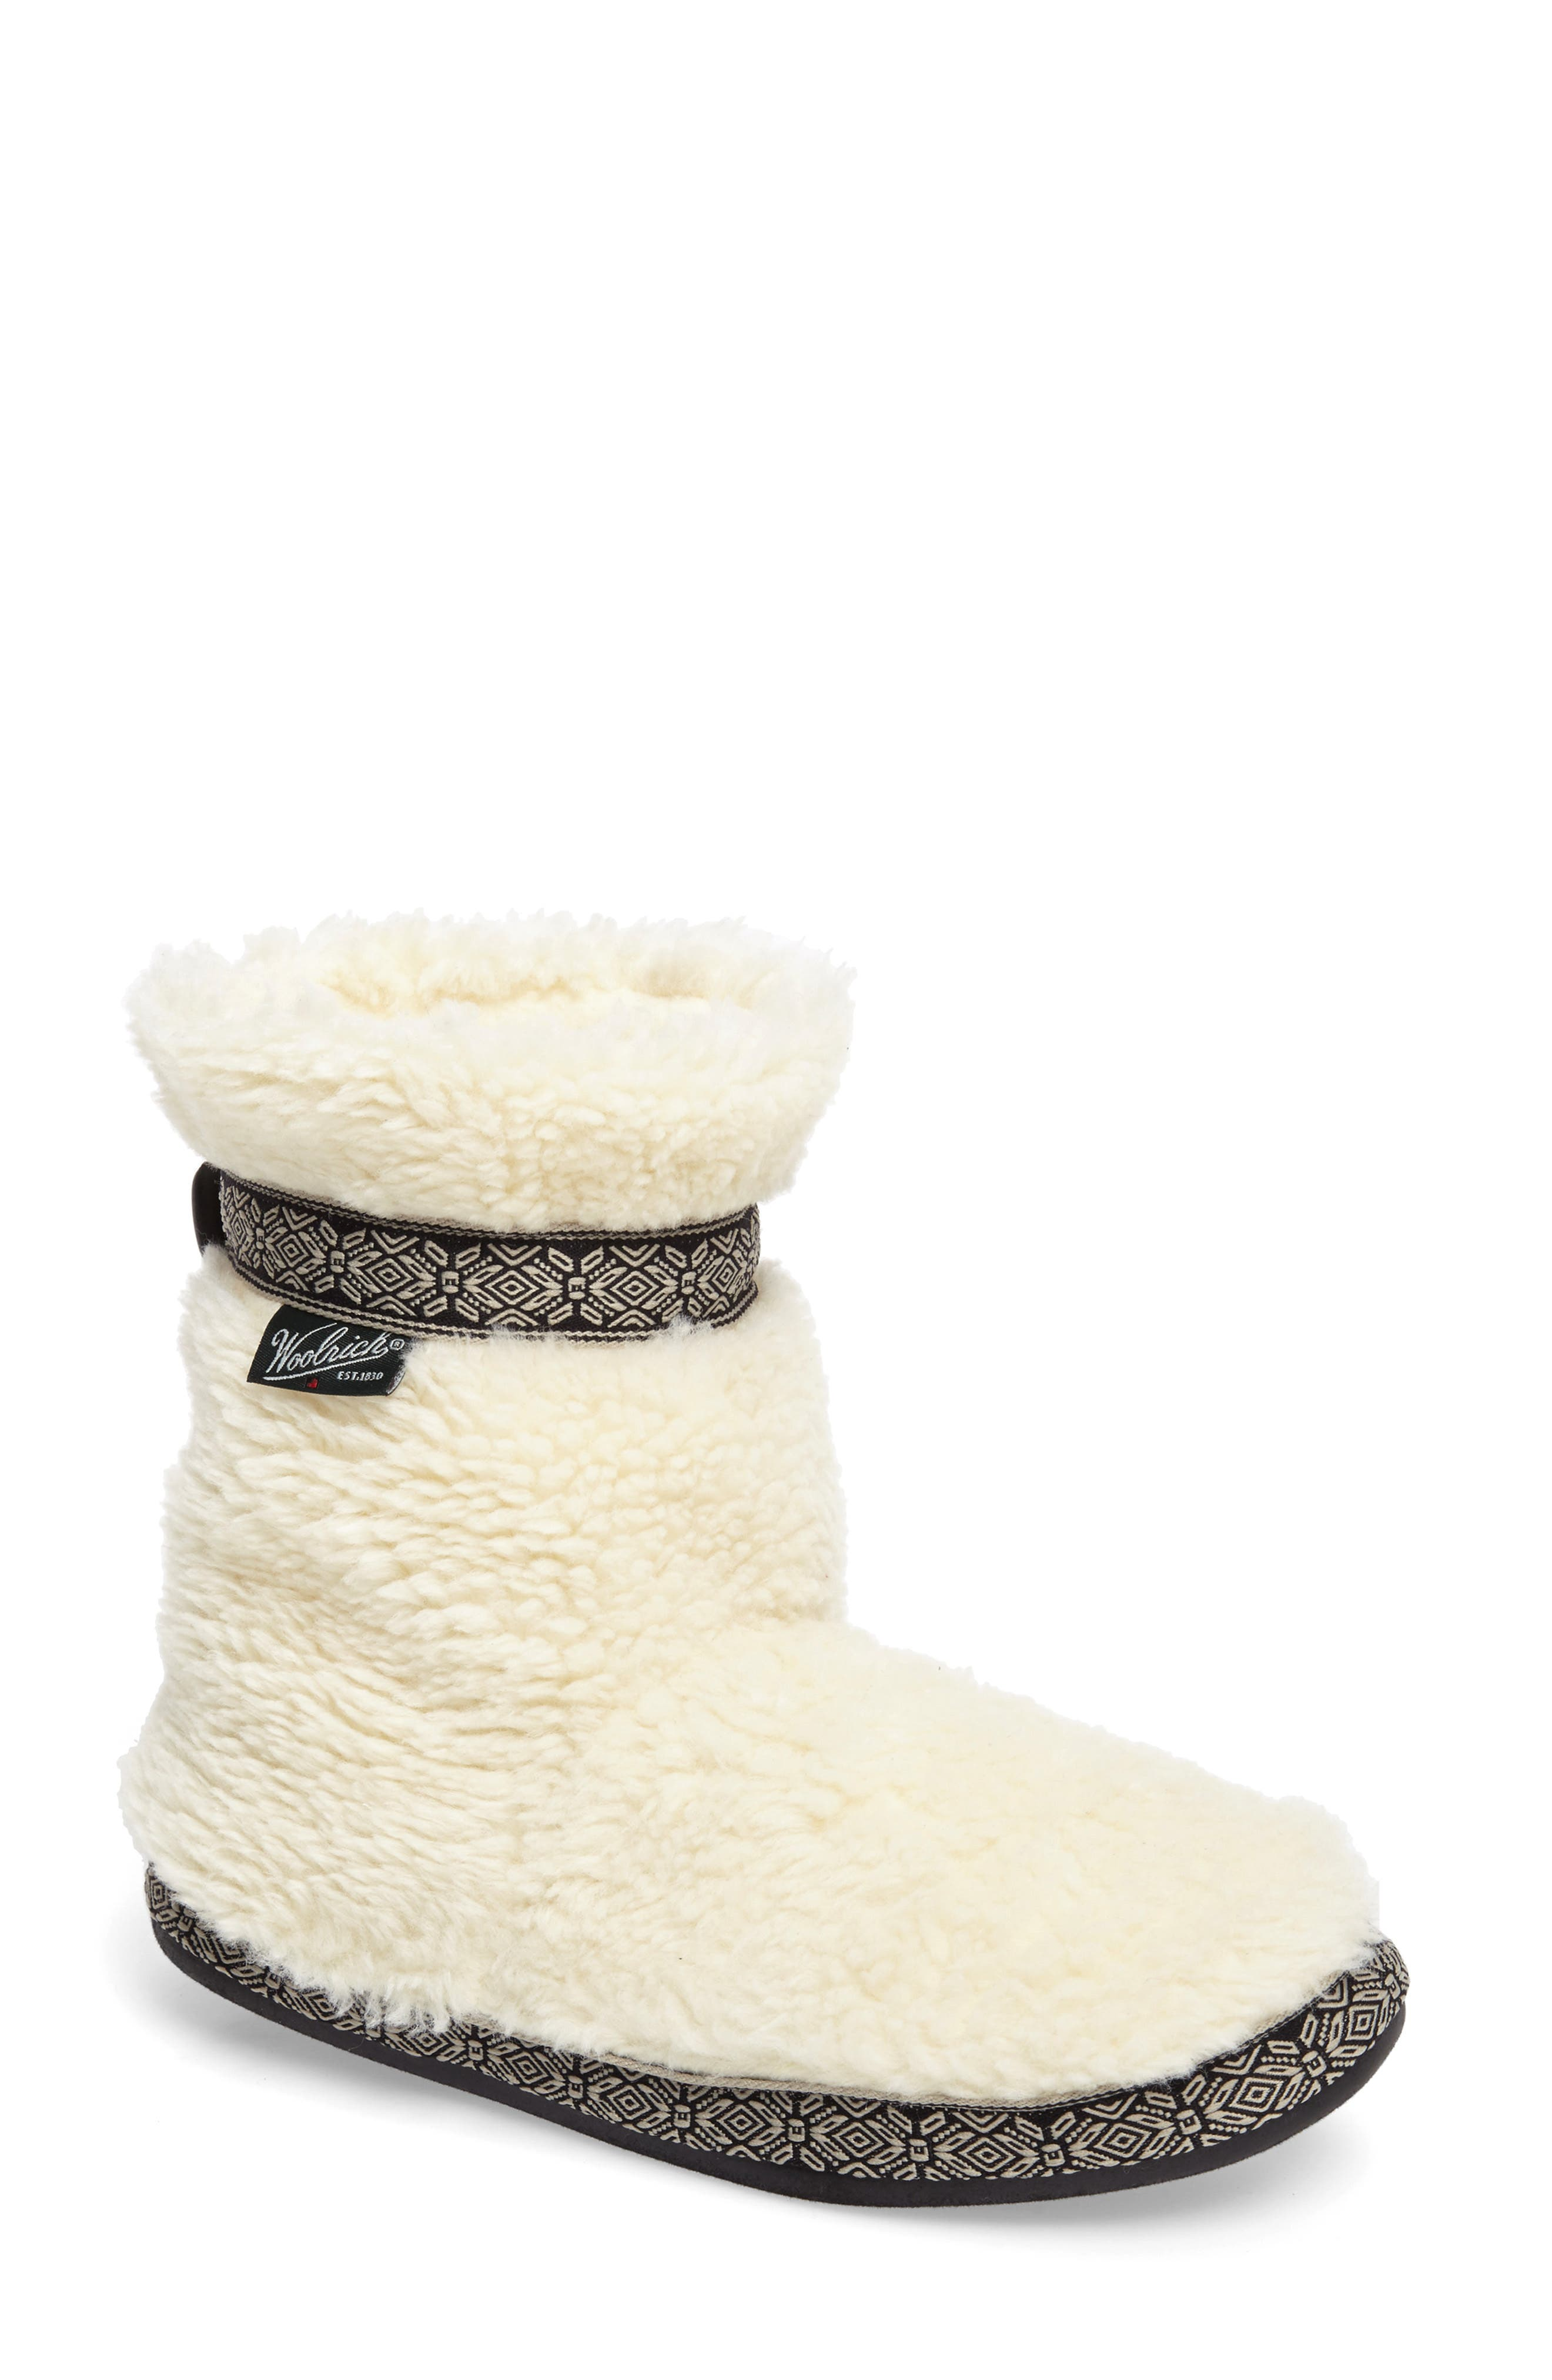 Main Image - Woolrich Whitecap Slipper Bootie (Women)